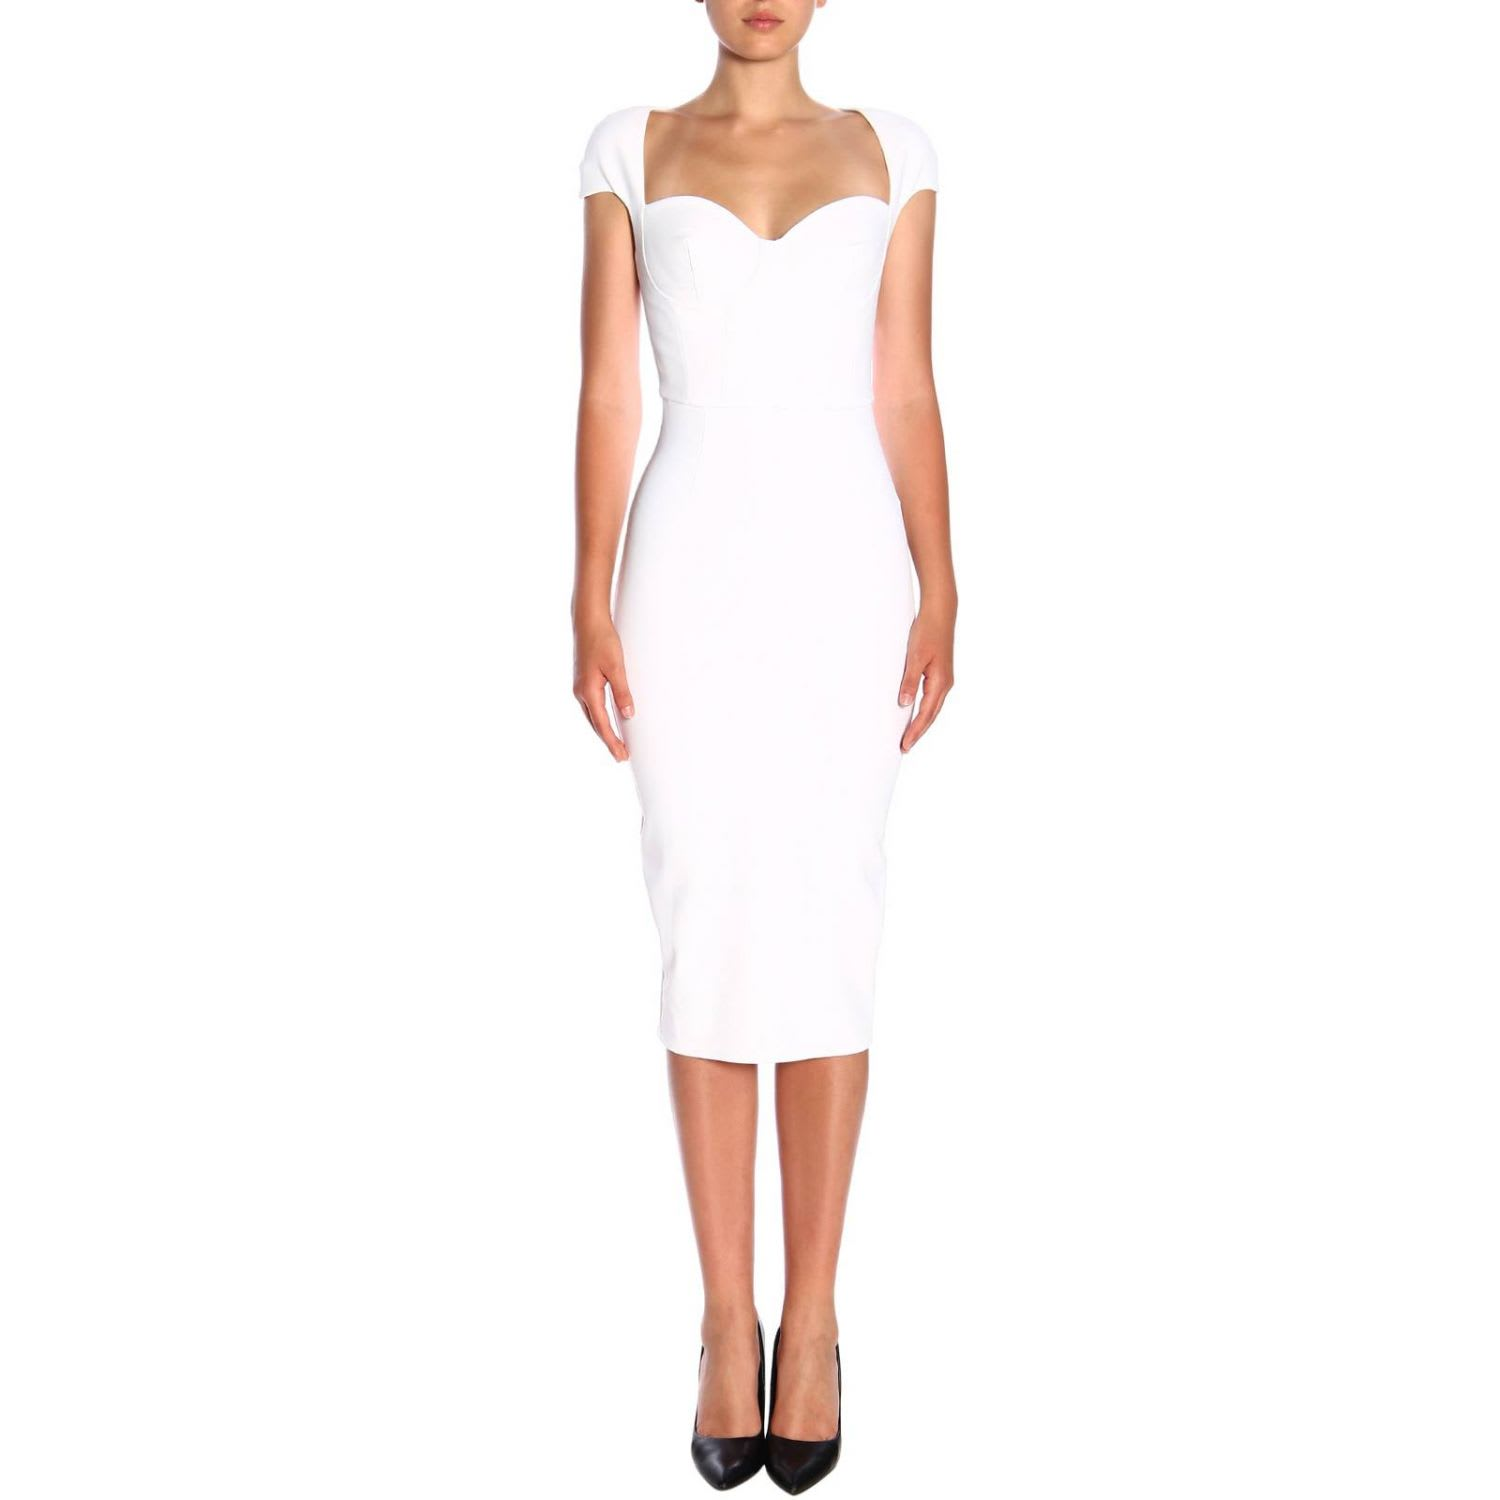 Elisabetta Franchi Dress Elisabetta Franchi Longuette Dress In Crepe